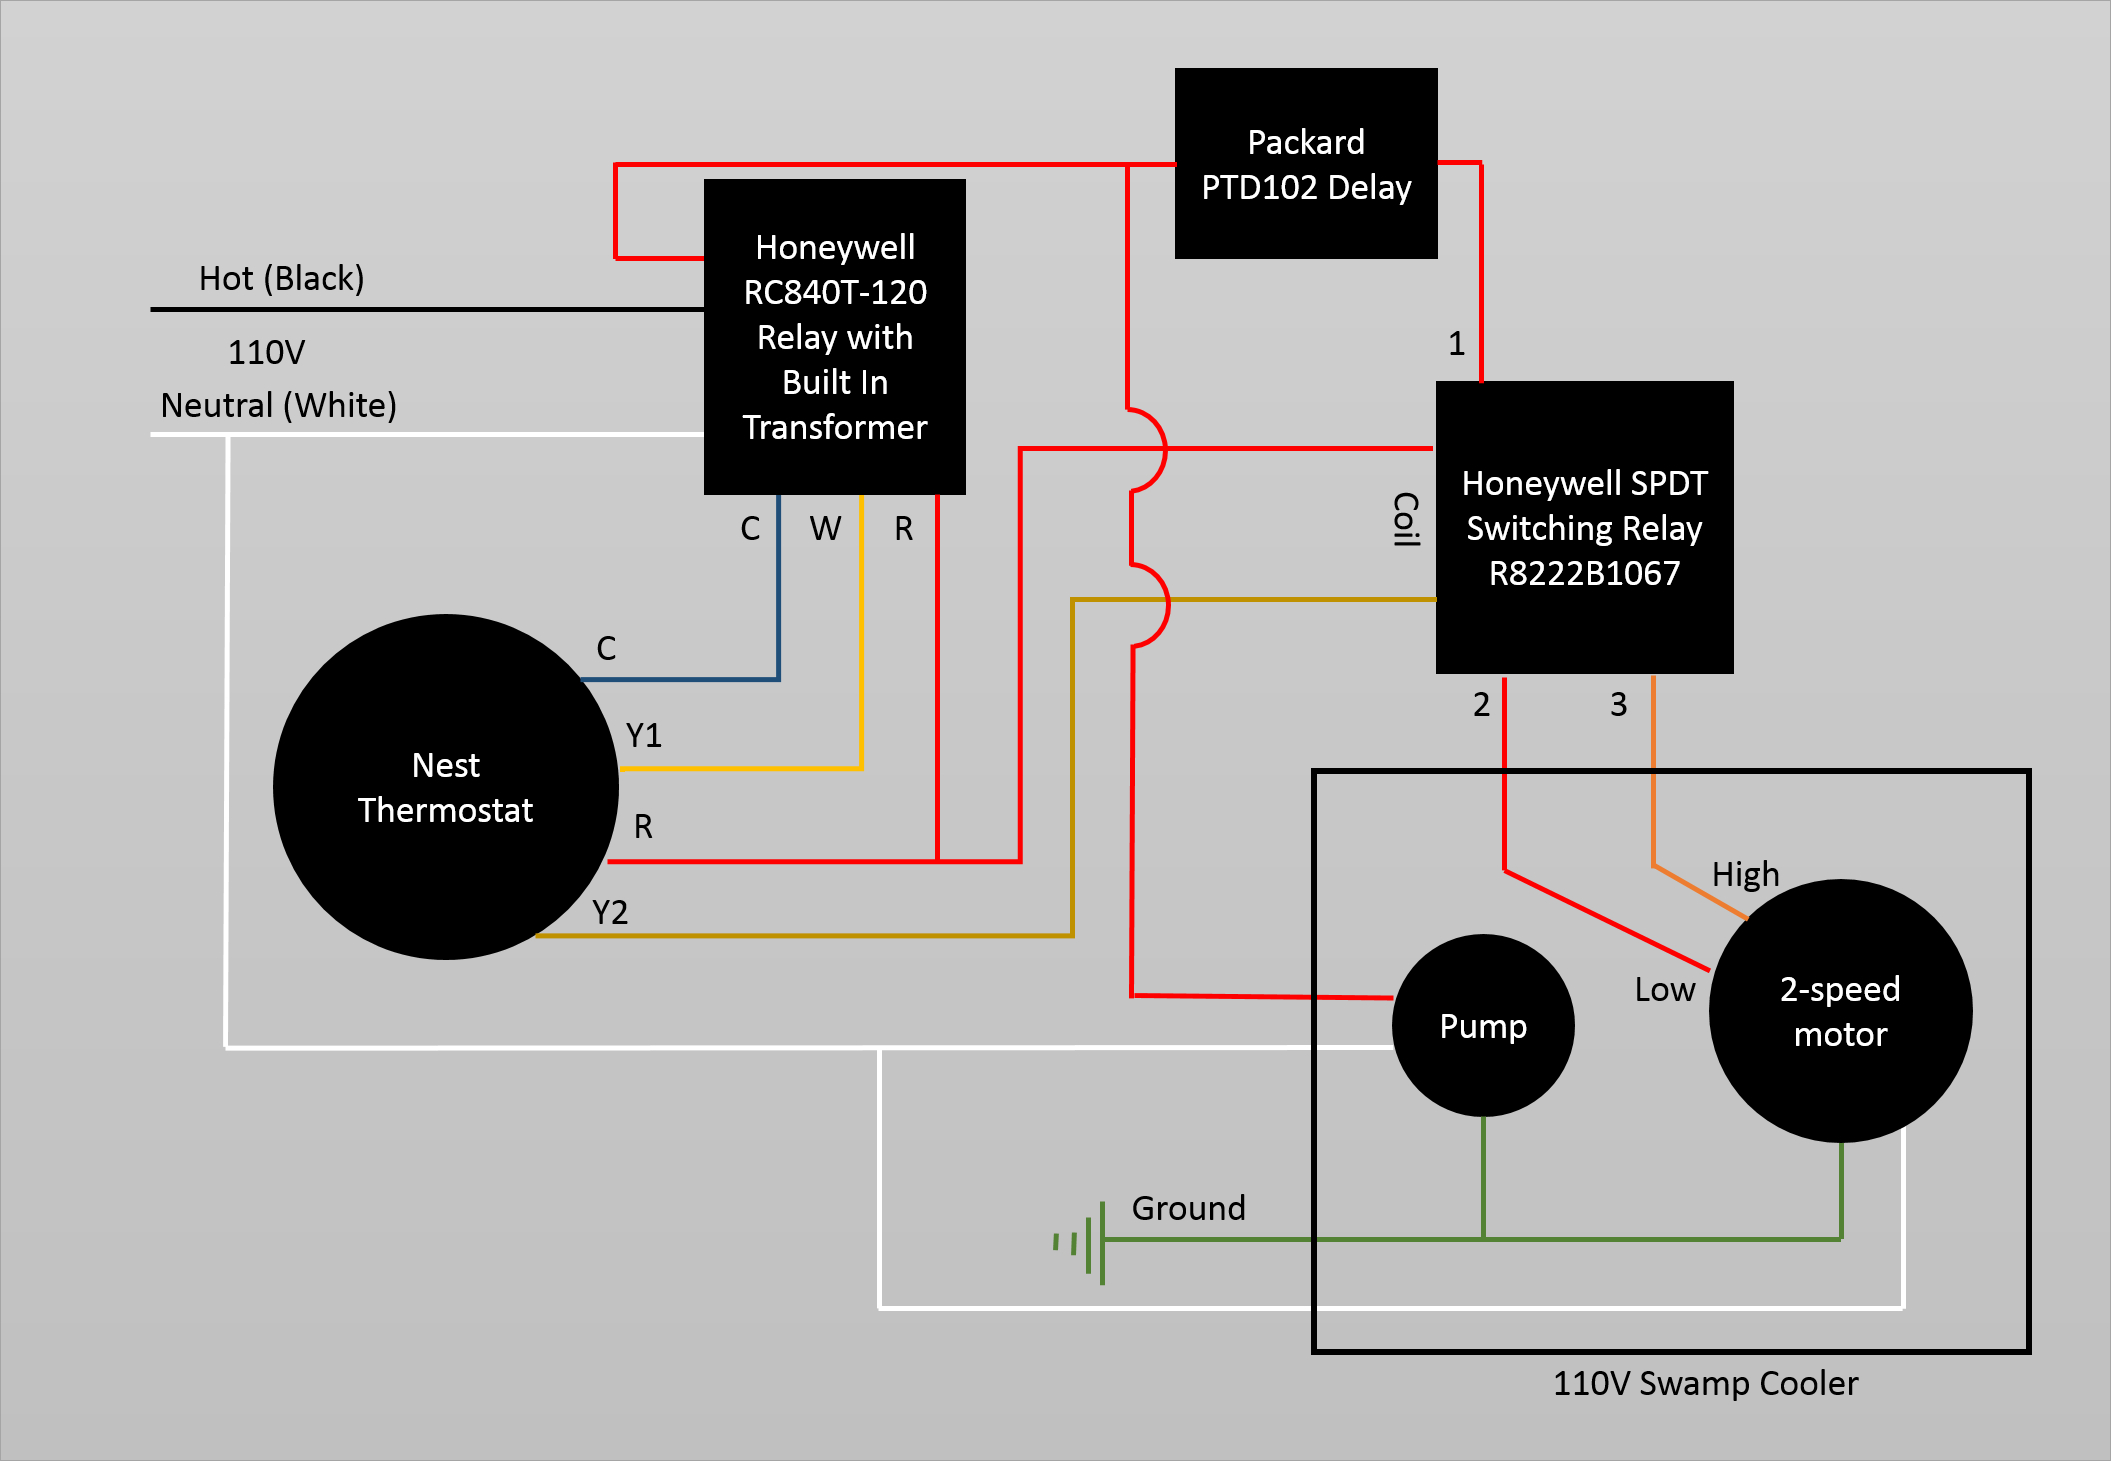 Wiring - Controlling 110V Swamp Cooler Using Nest Thermostat - Home - Nest E Custom Wiring Diagram